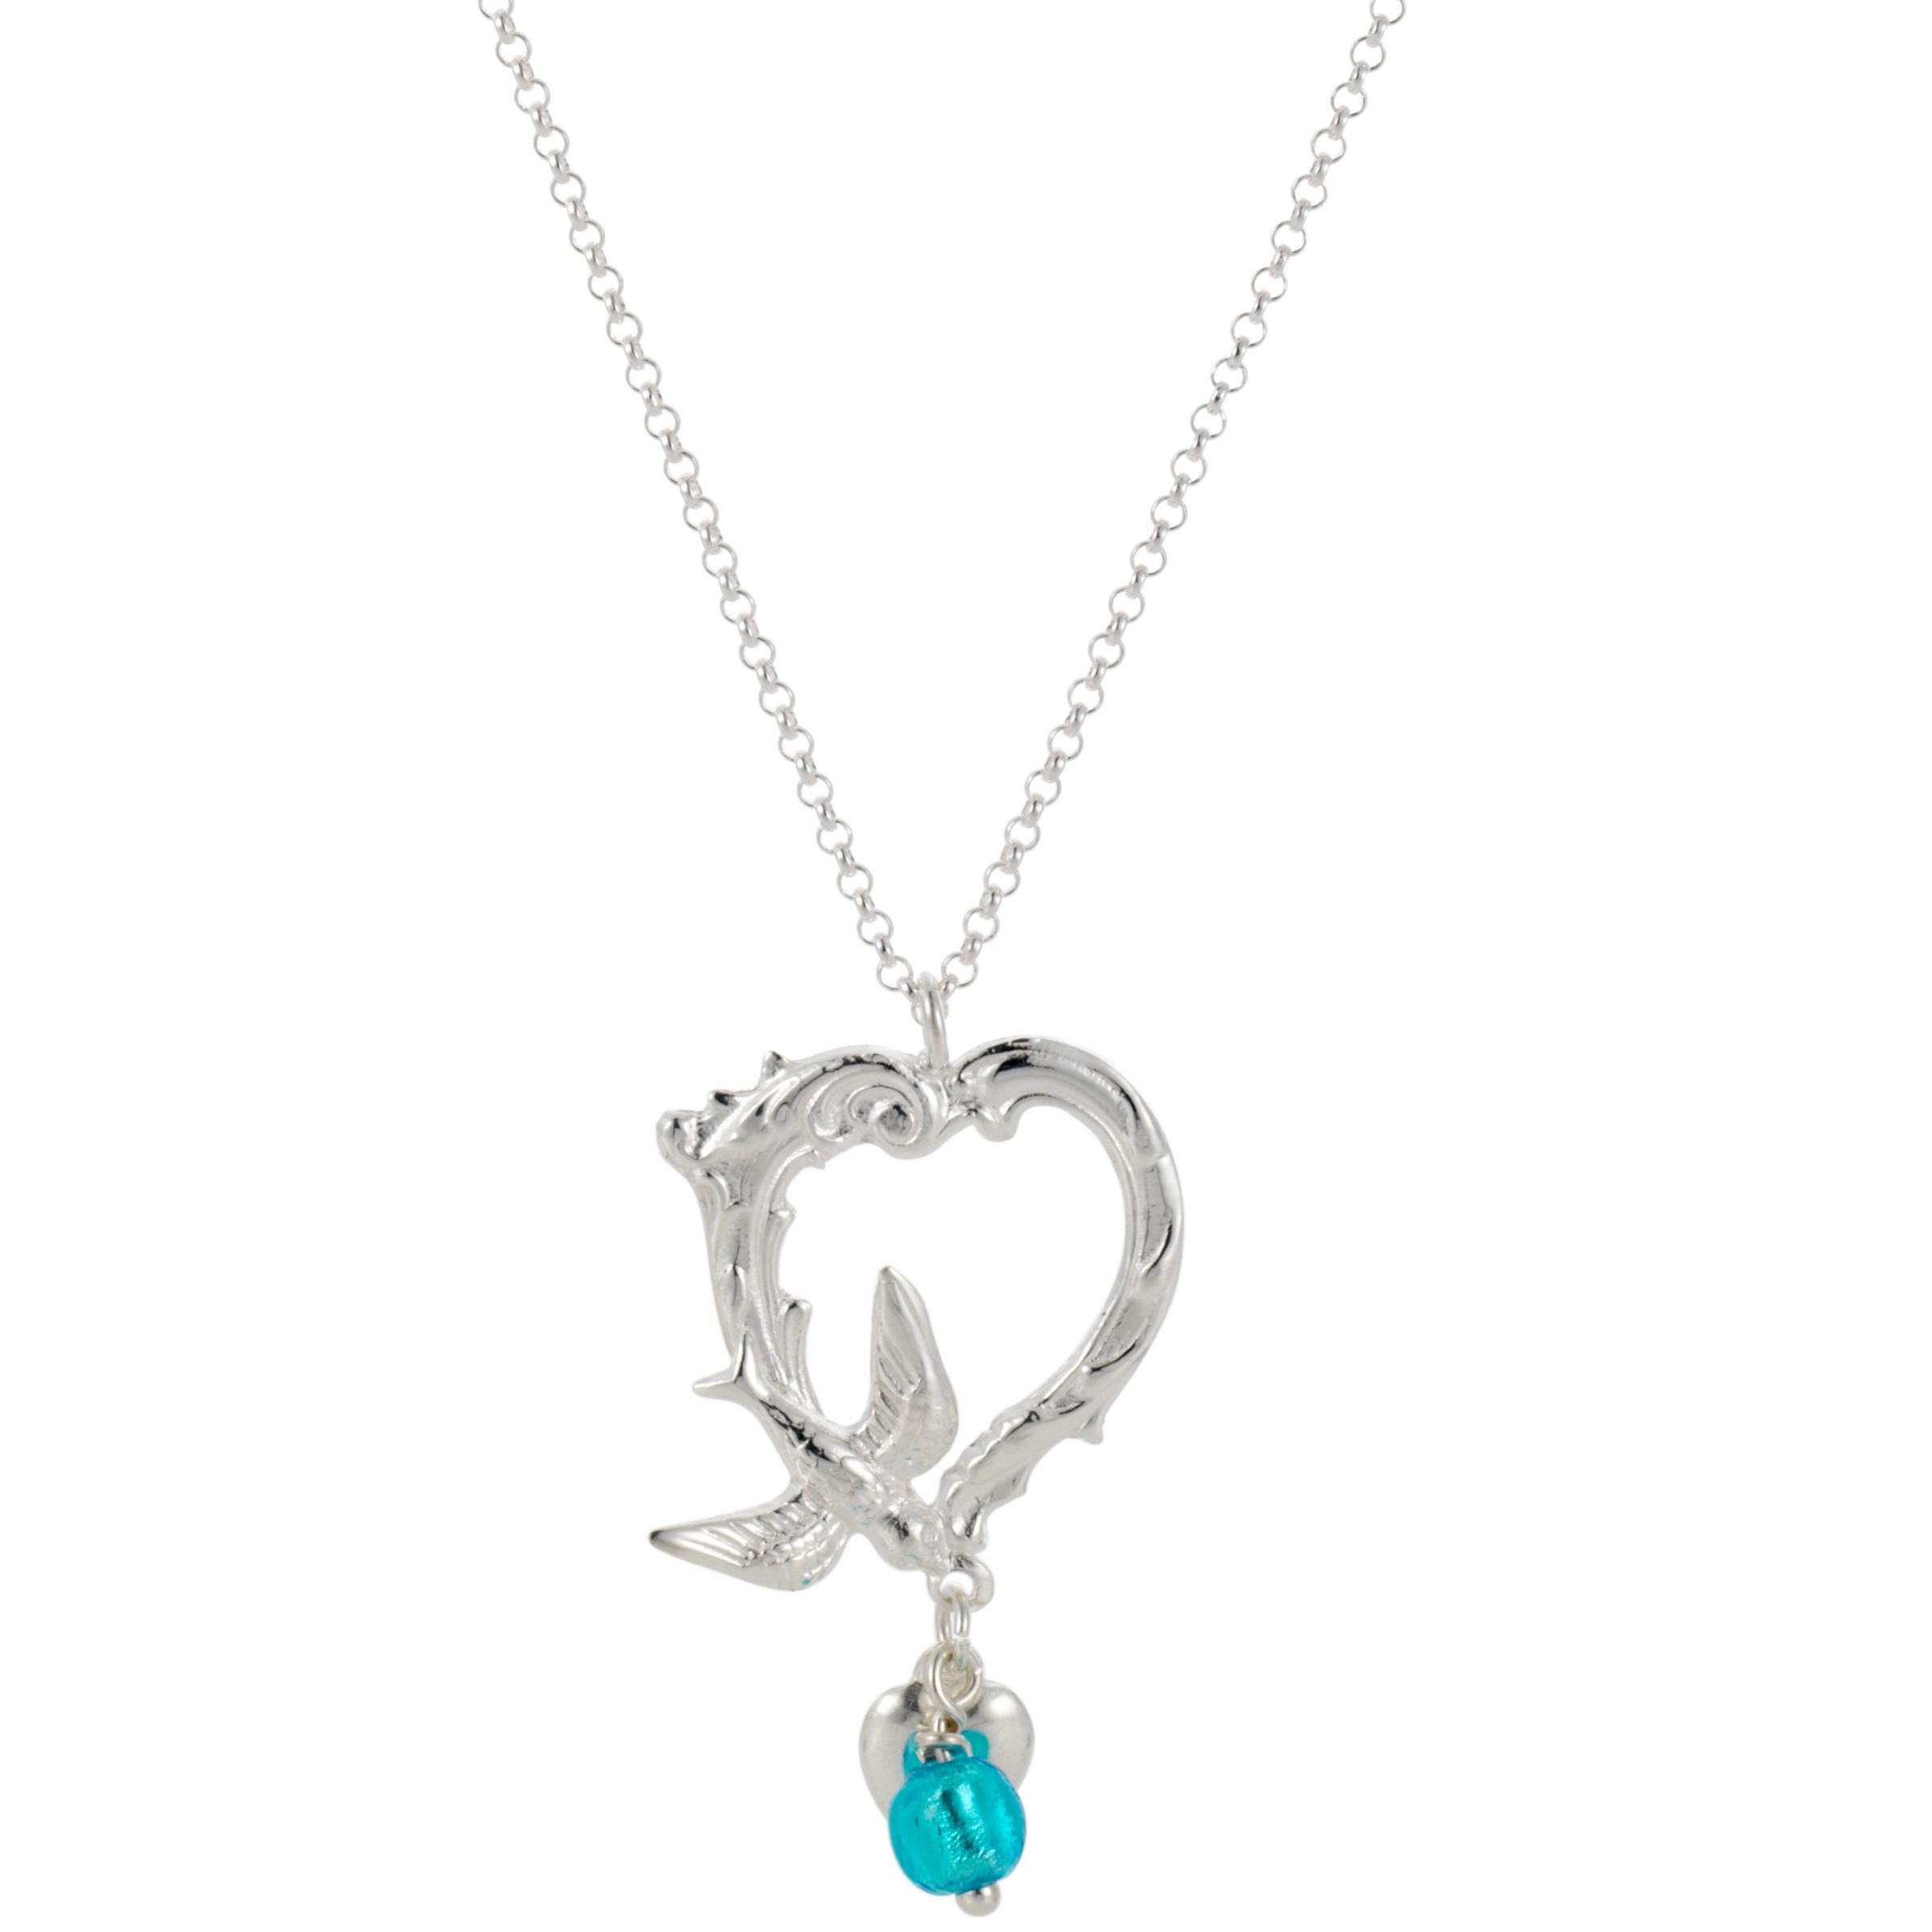 Martick Ornate Swallow Heart Pendant Necklace